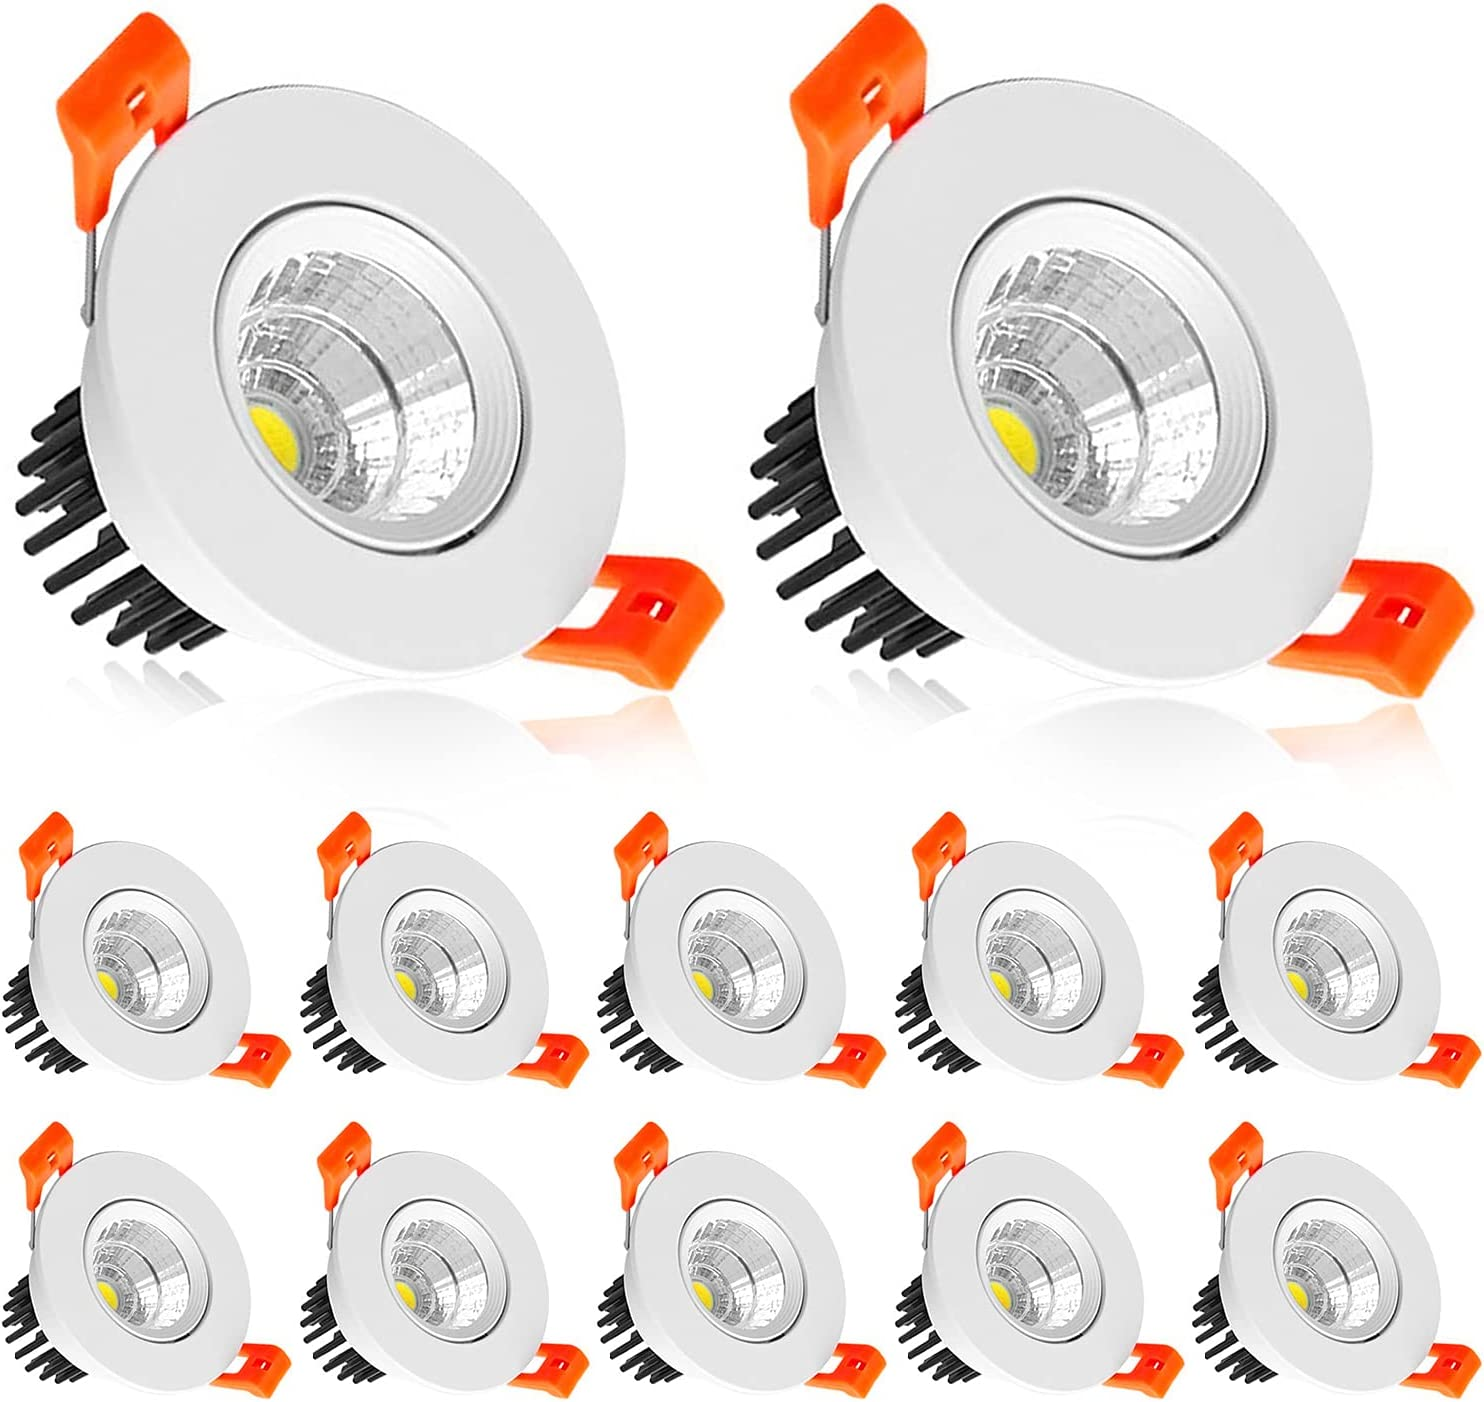 2 Inch LED Downlight Under blast sales 3W Recessed W COB Lighting discount Dimmable 3000K